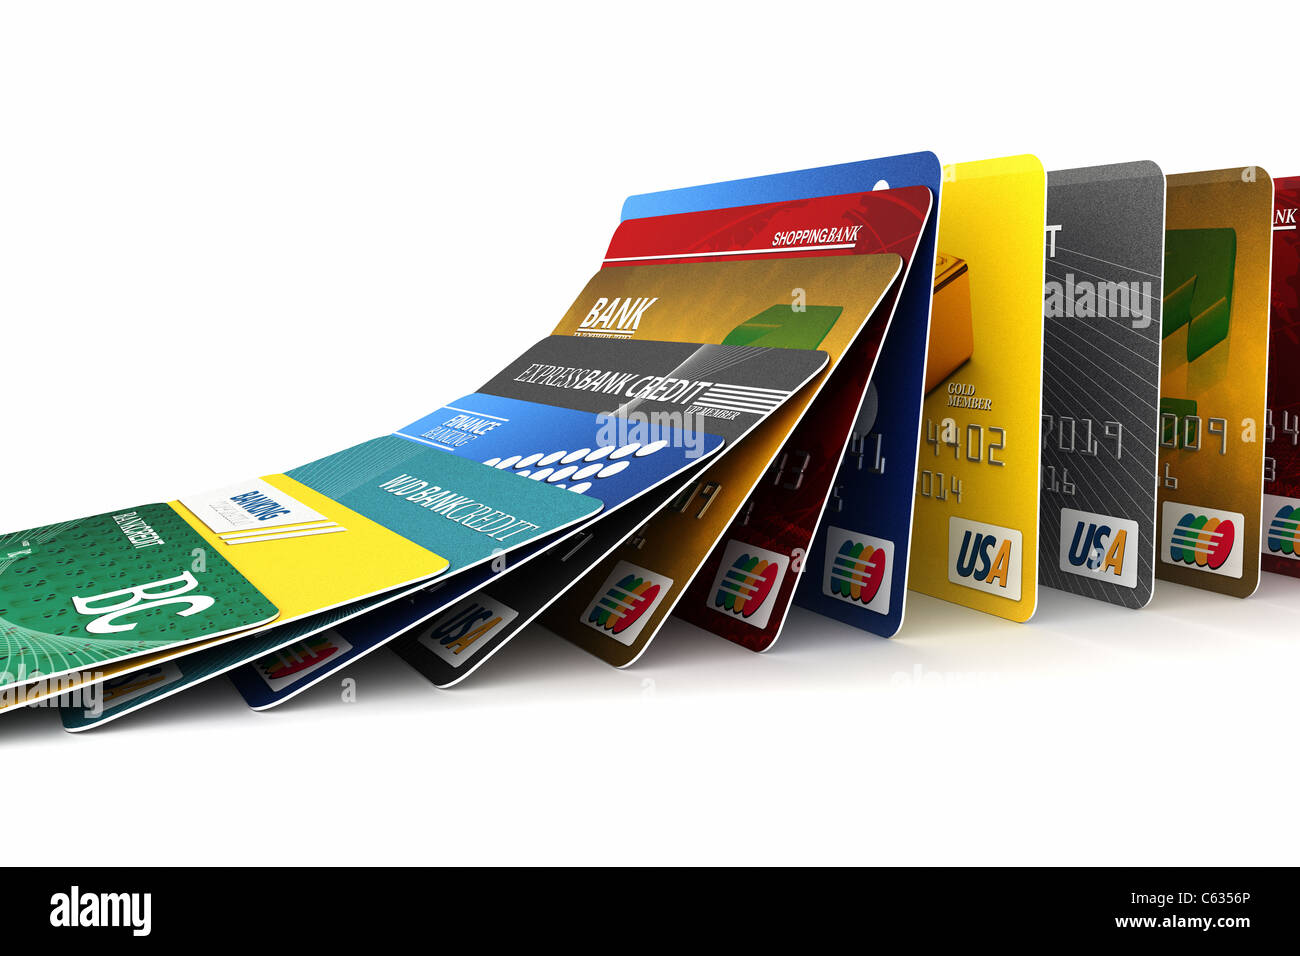 Fake credit cards in a row - Stock Image